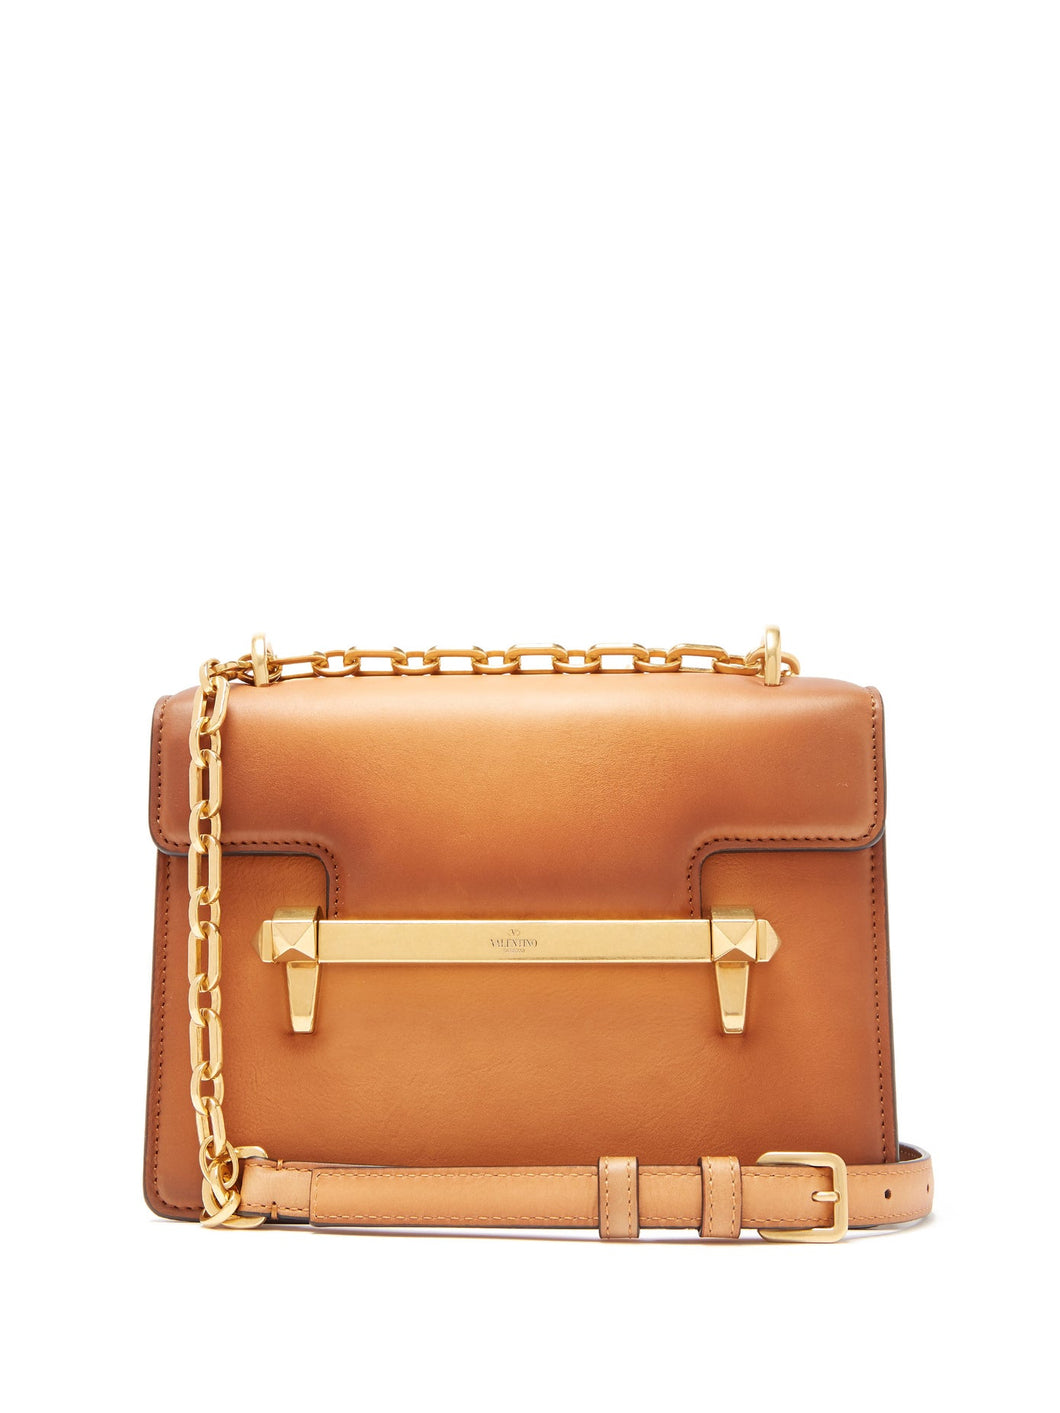 Uptown small leather cross-body bag